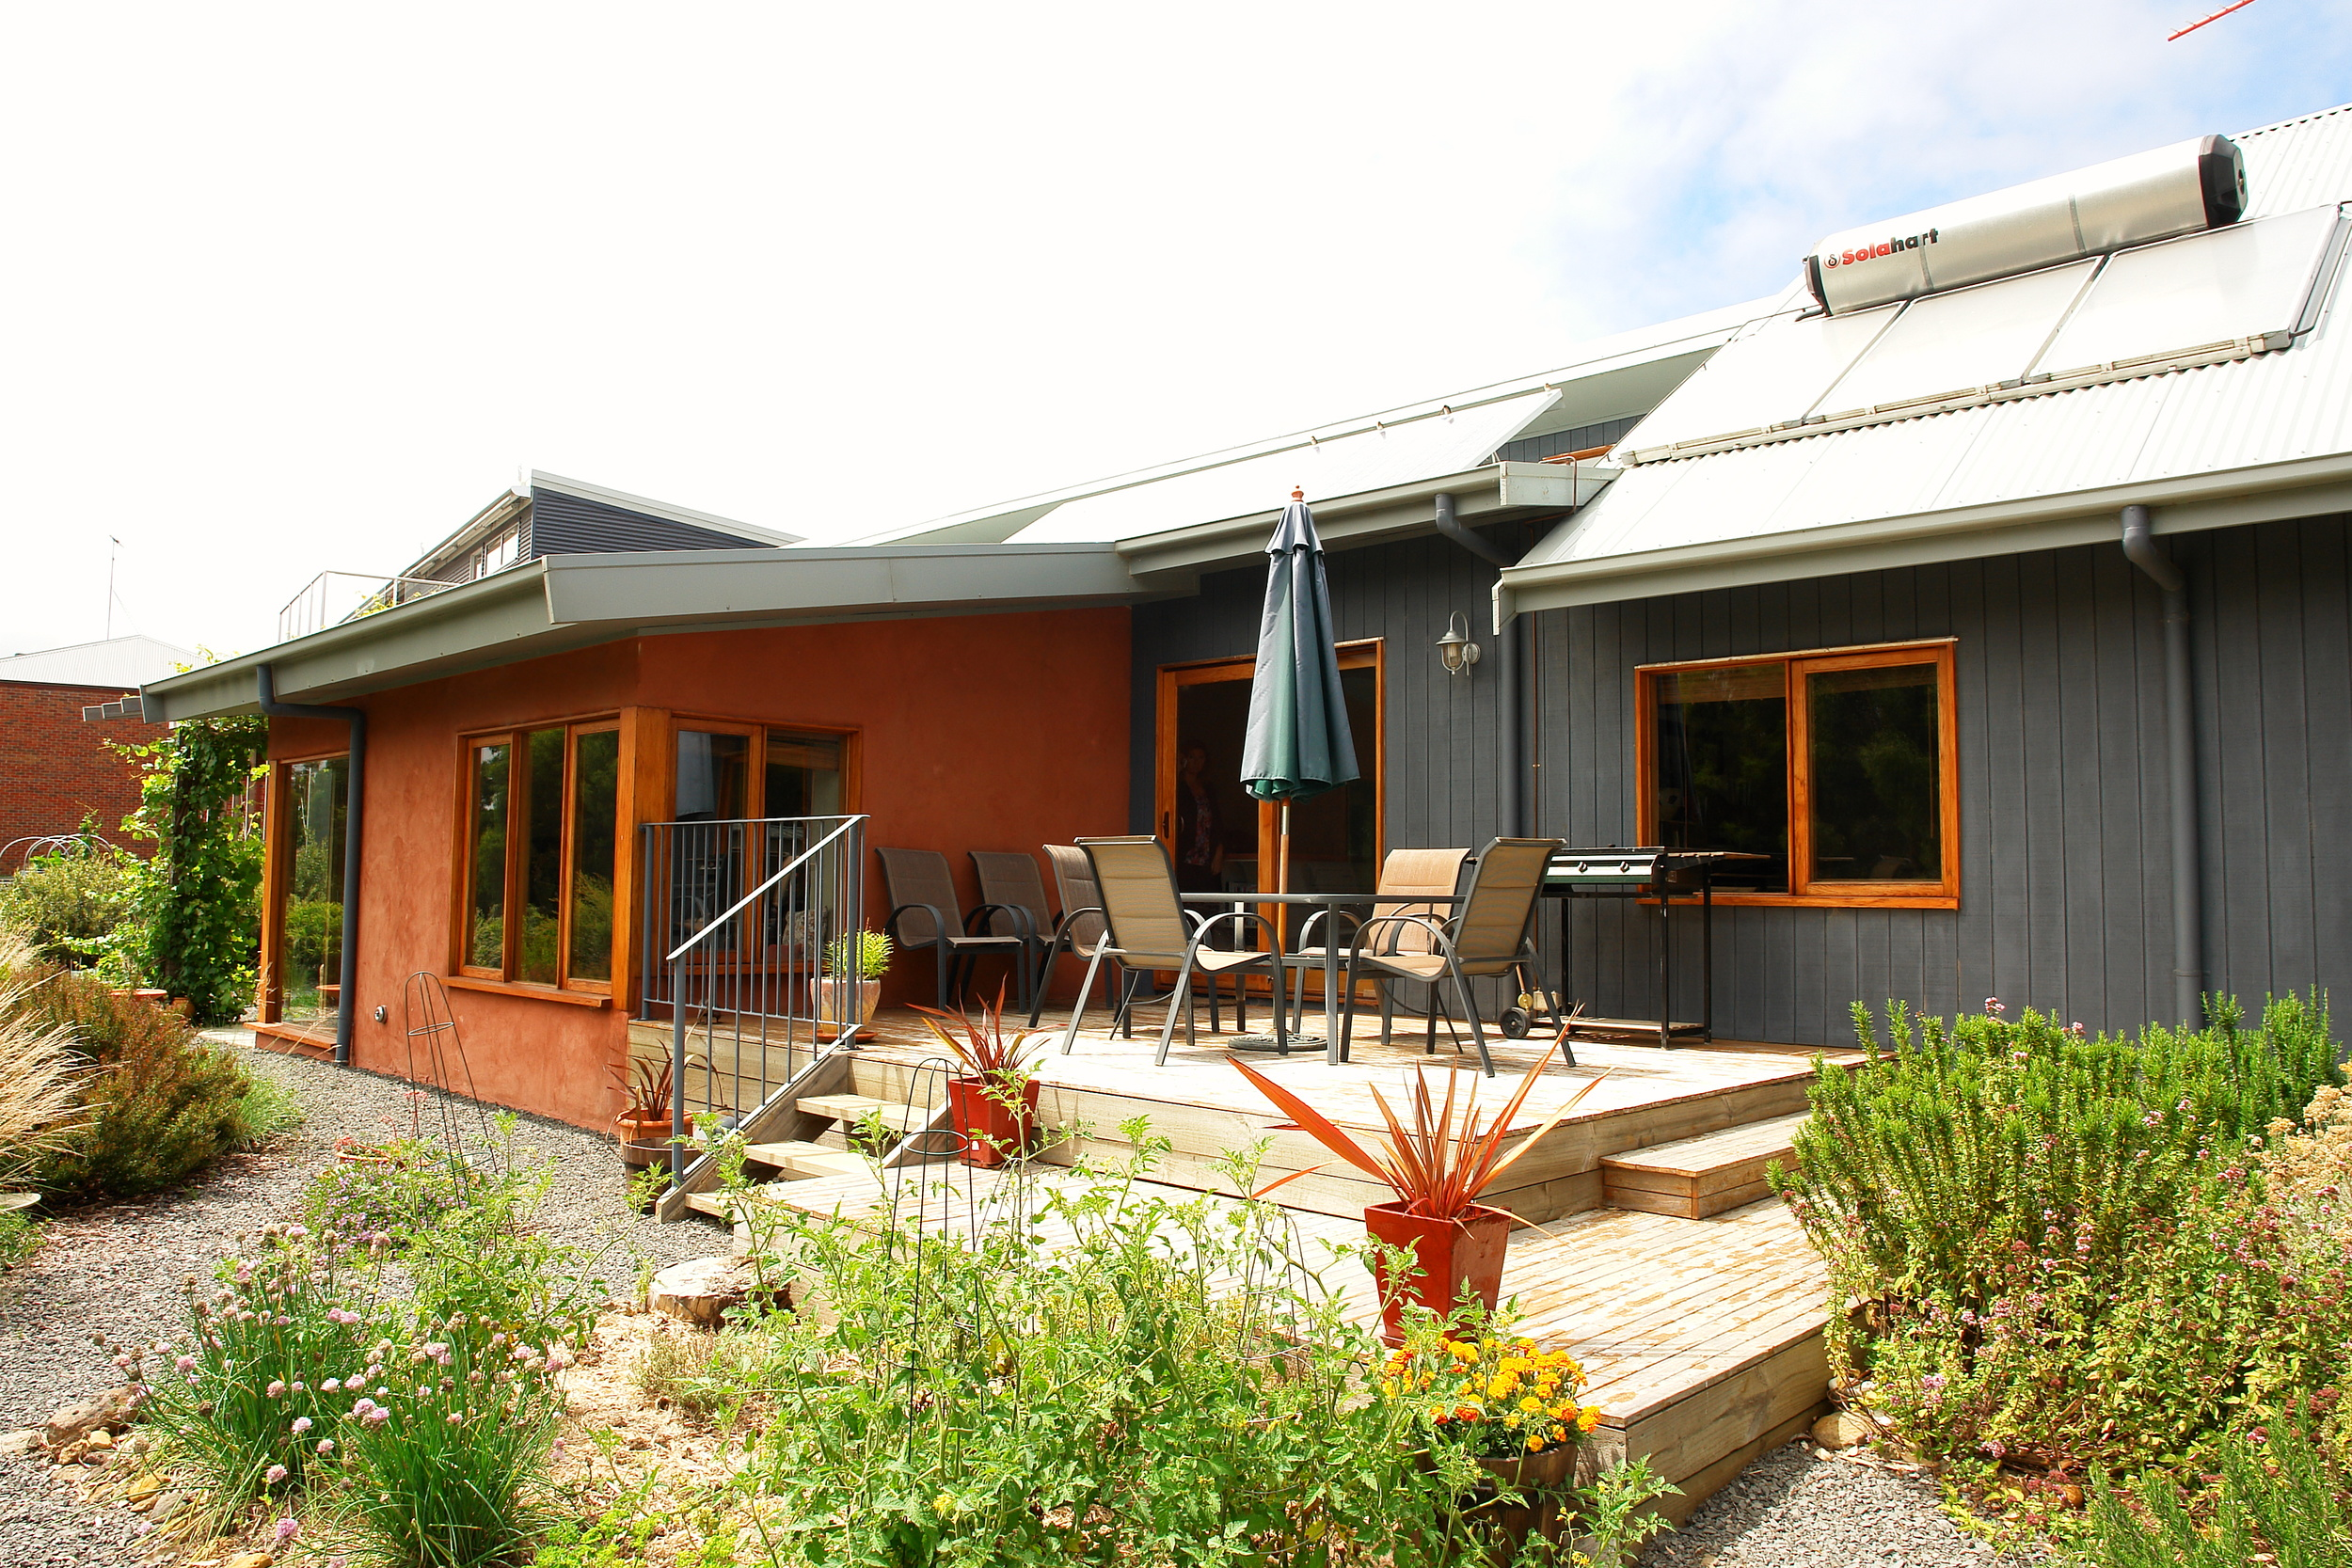 Marpeang: Rendered strawbale, split-level integrated into the site, solar power, super low energy modern eco-house.